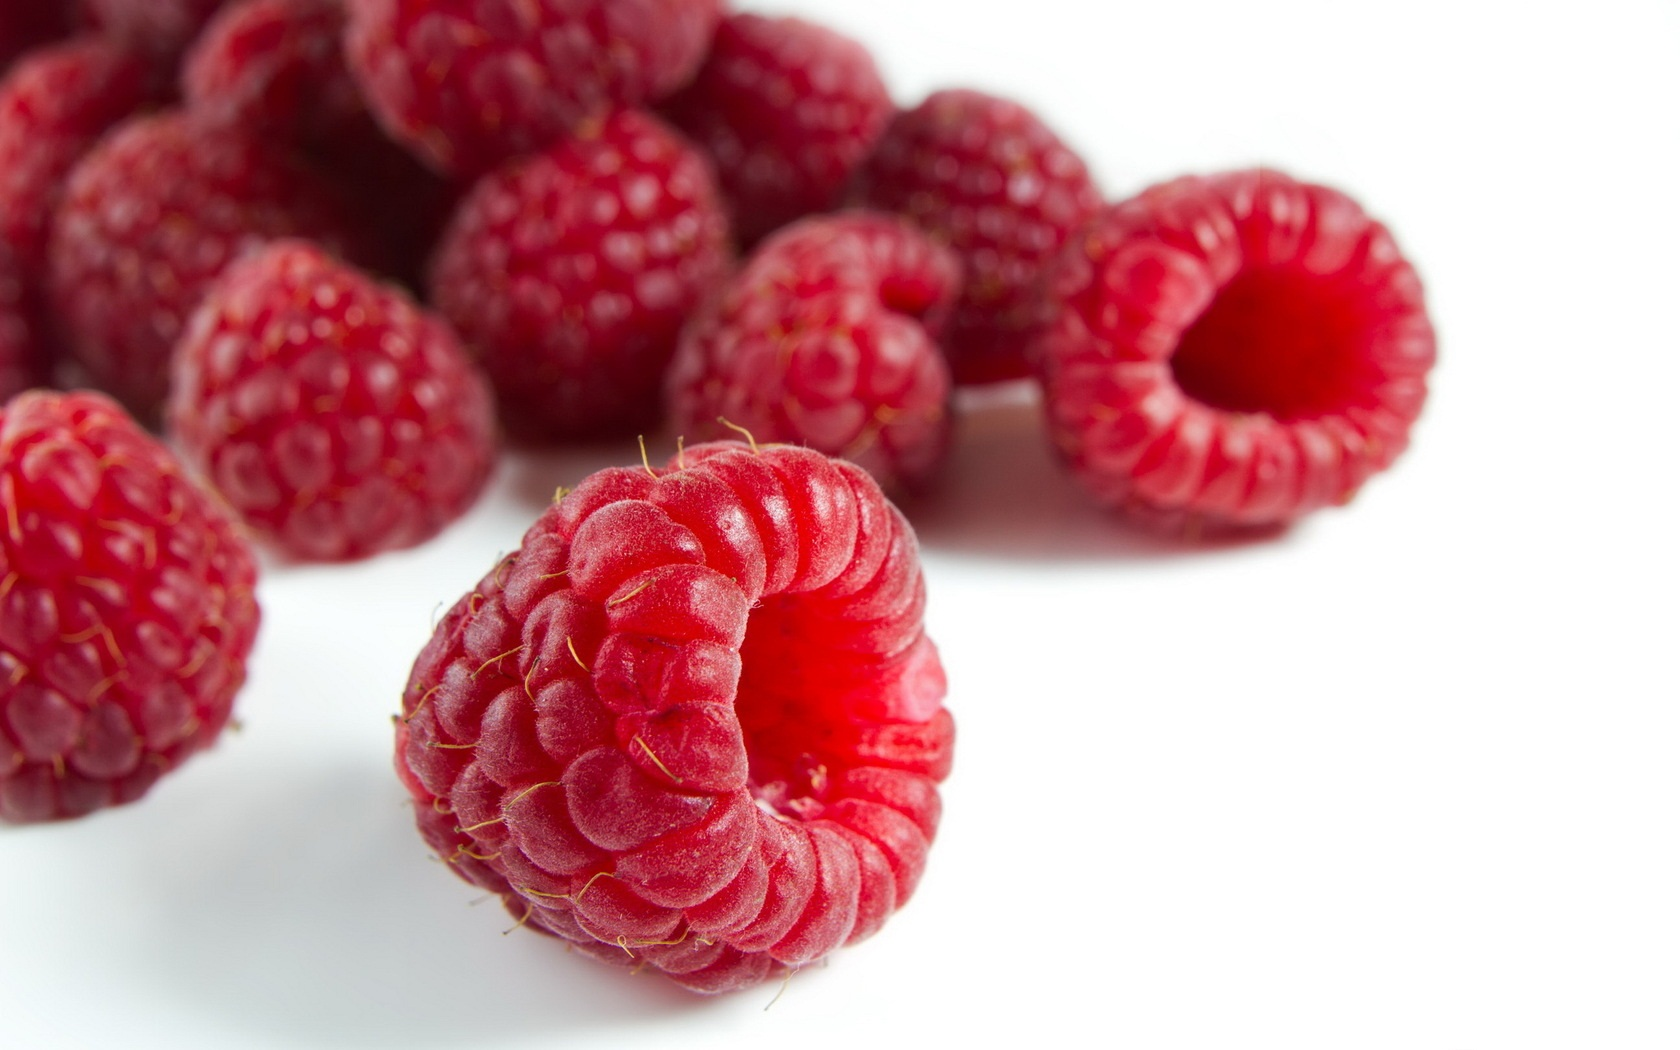 Sweet Raspberries Pictures 3017.41 Kb